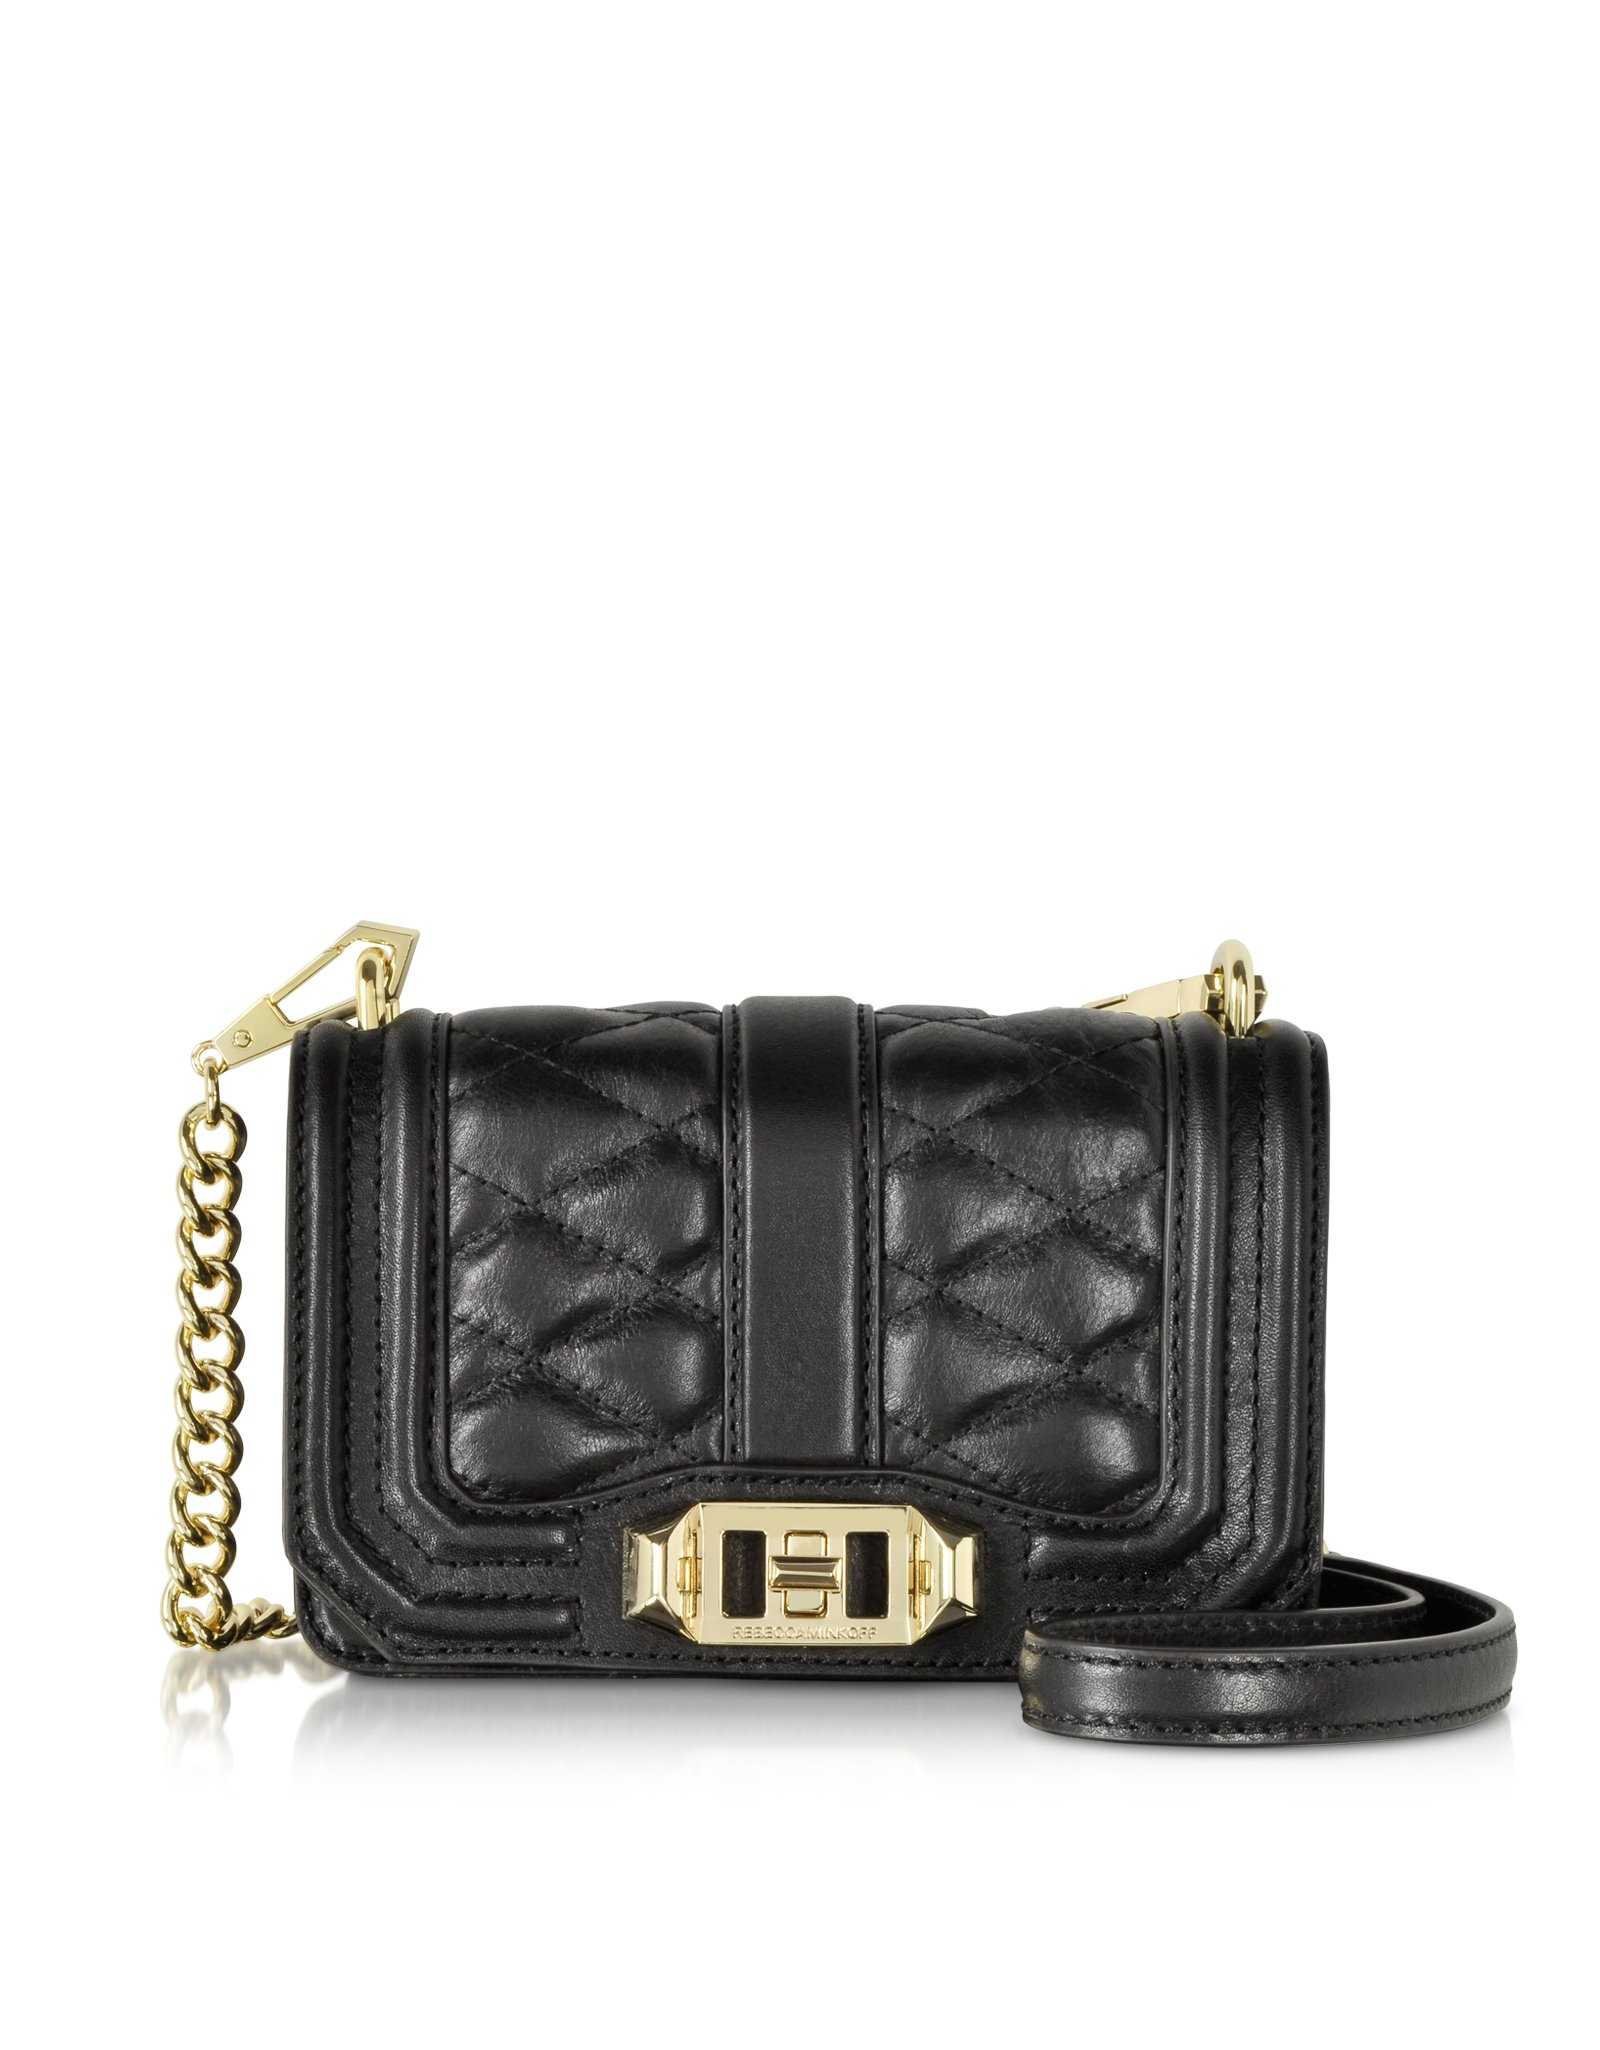 Rebecca Minkoff Mini Love Cross-Body Handbag, Black, One Size